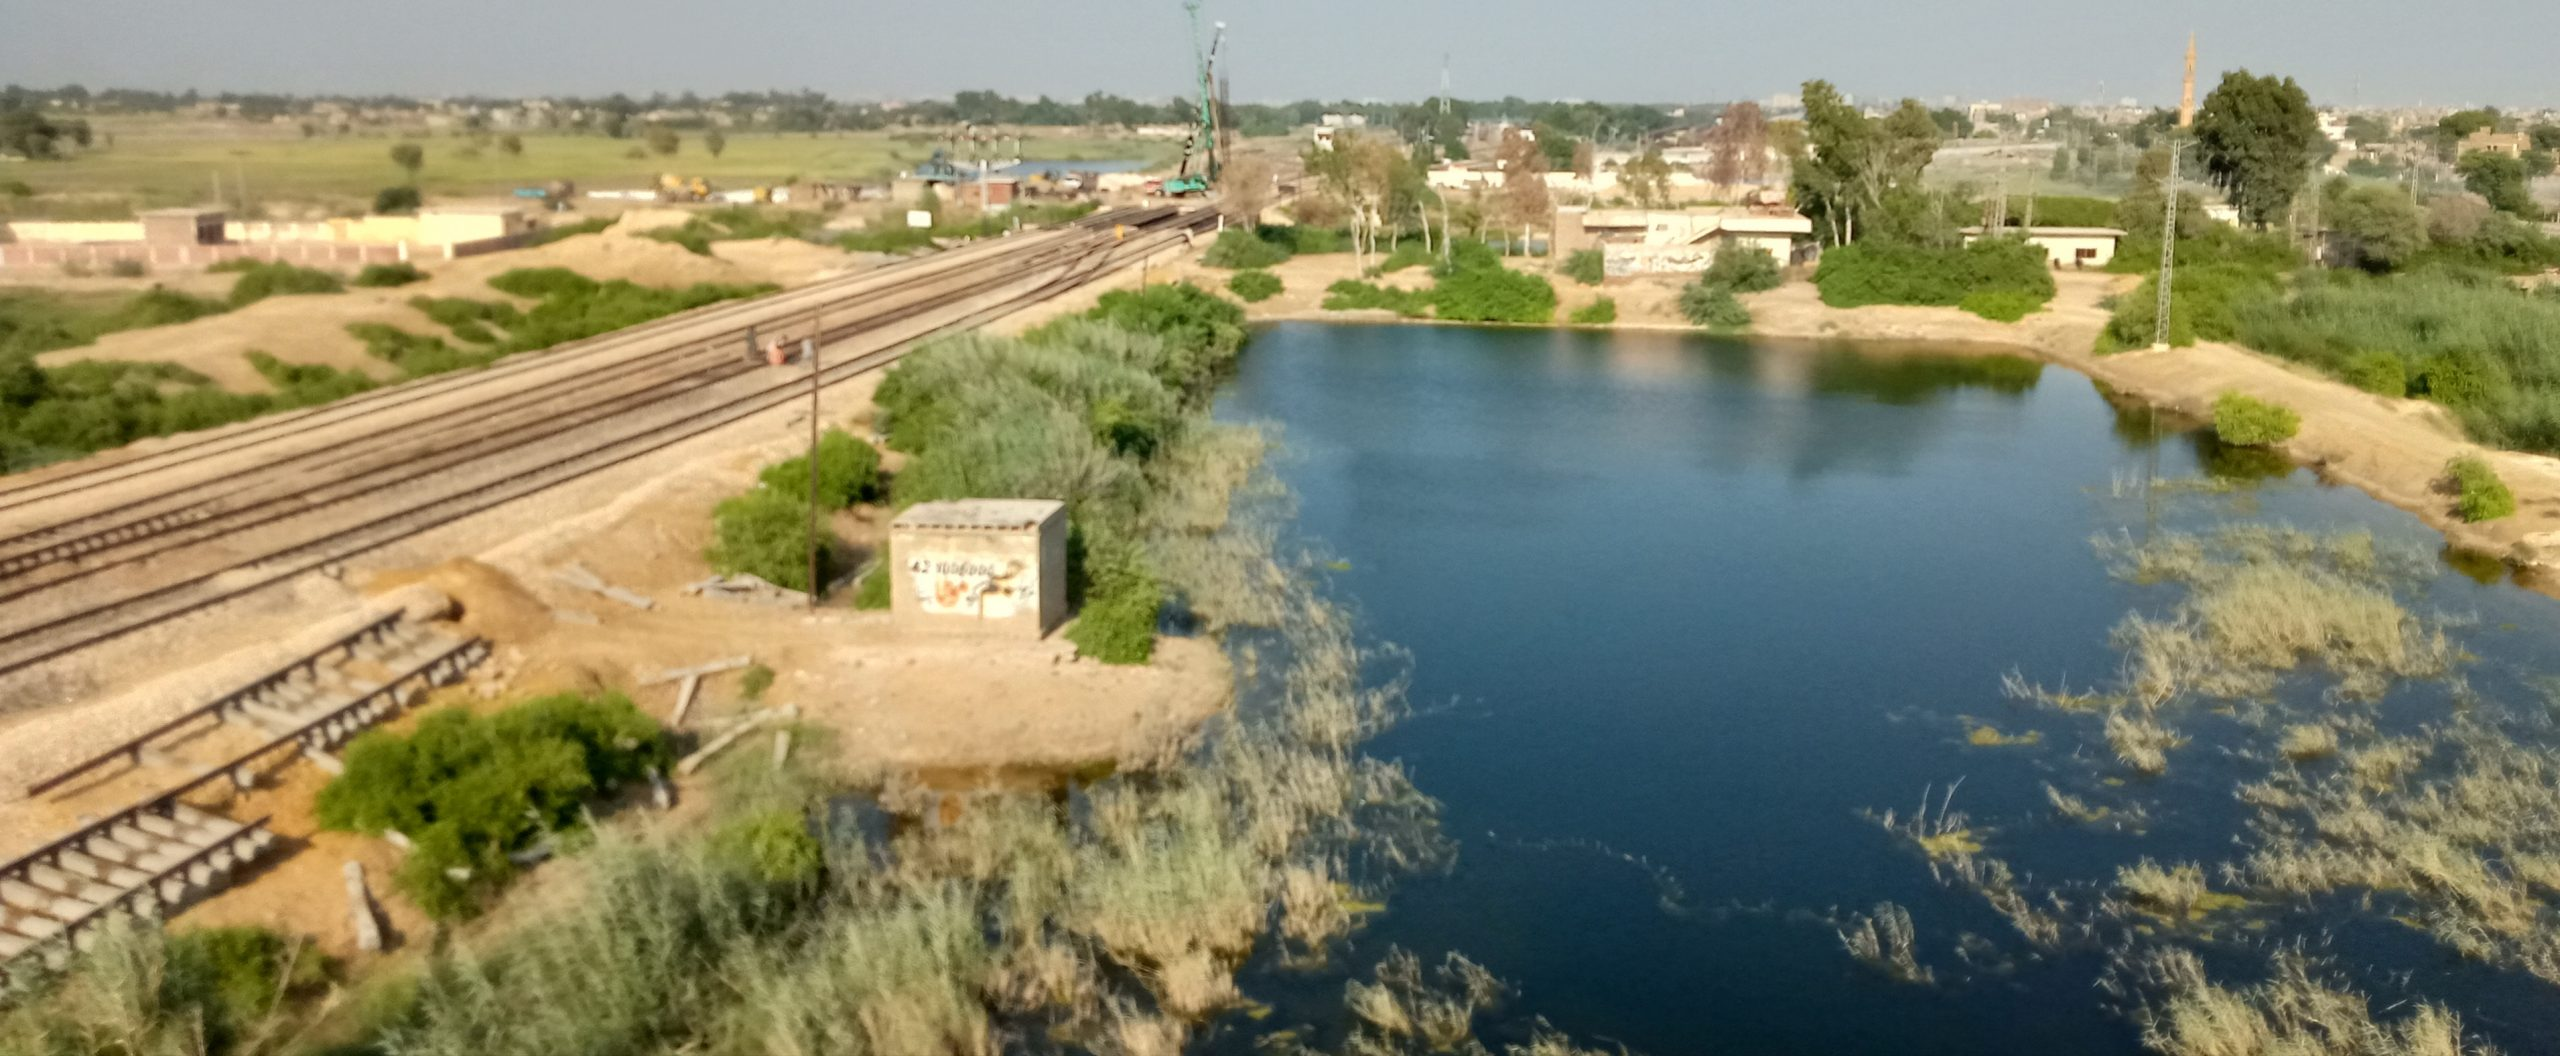 Water pollution continues posing threat to human life in Sindh-Sindh Courier-9